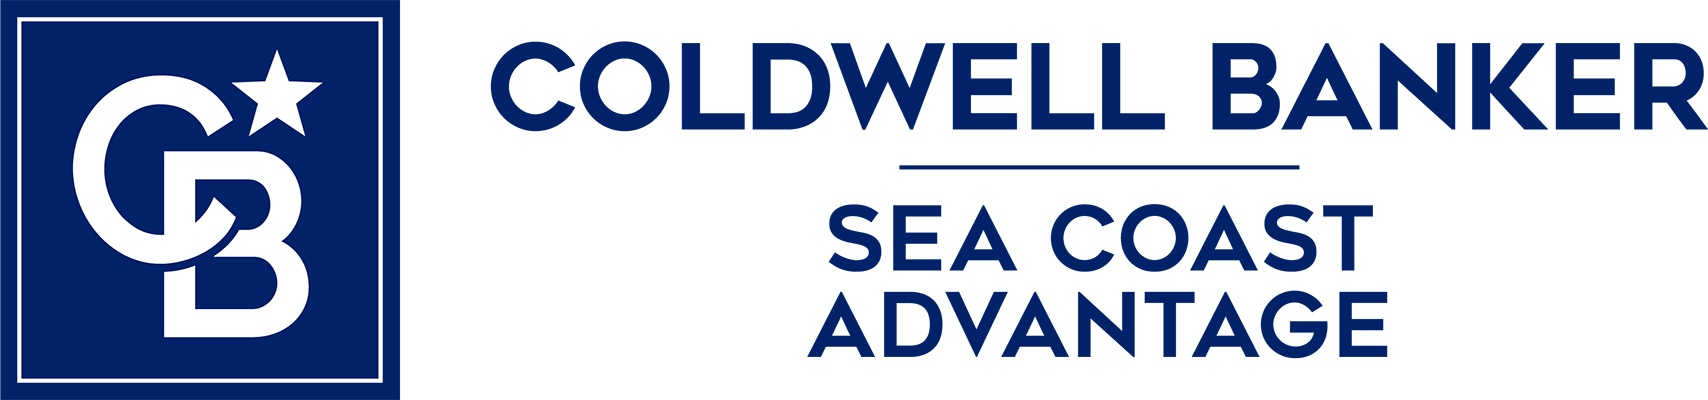 Polly Purnell-Norris - Coldwell Banker Sea Coast Advantage Realty Logo